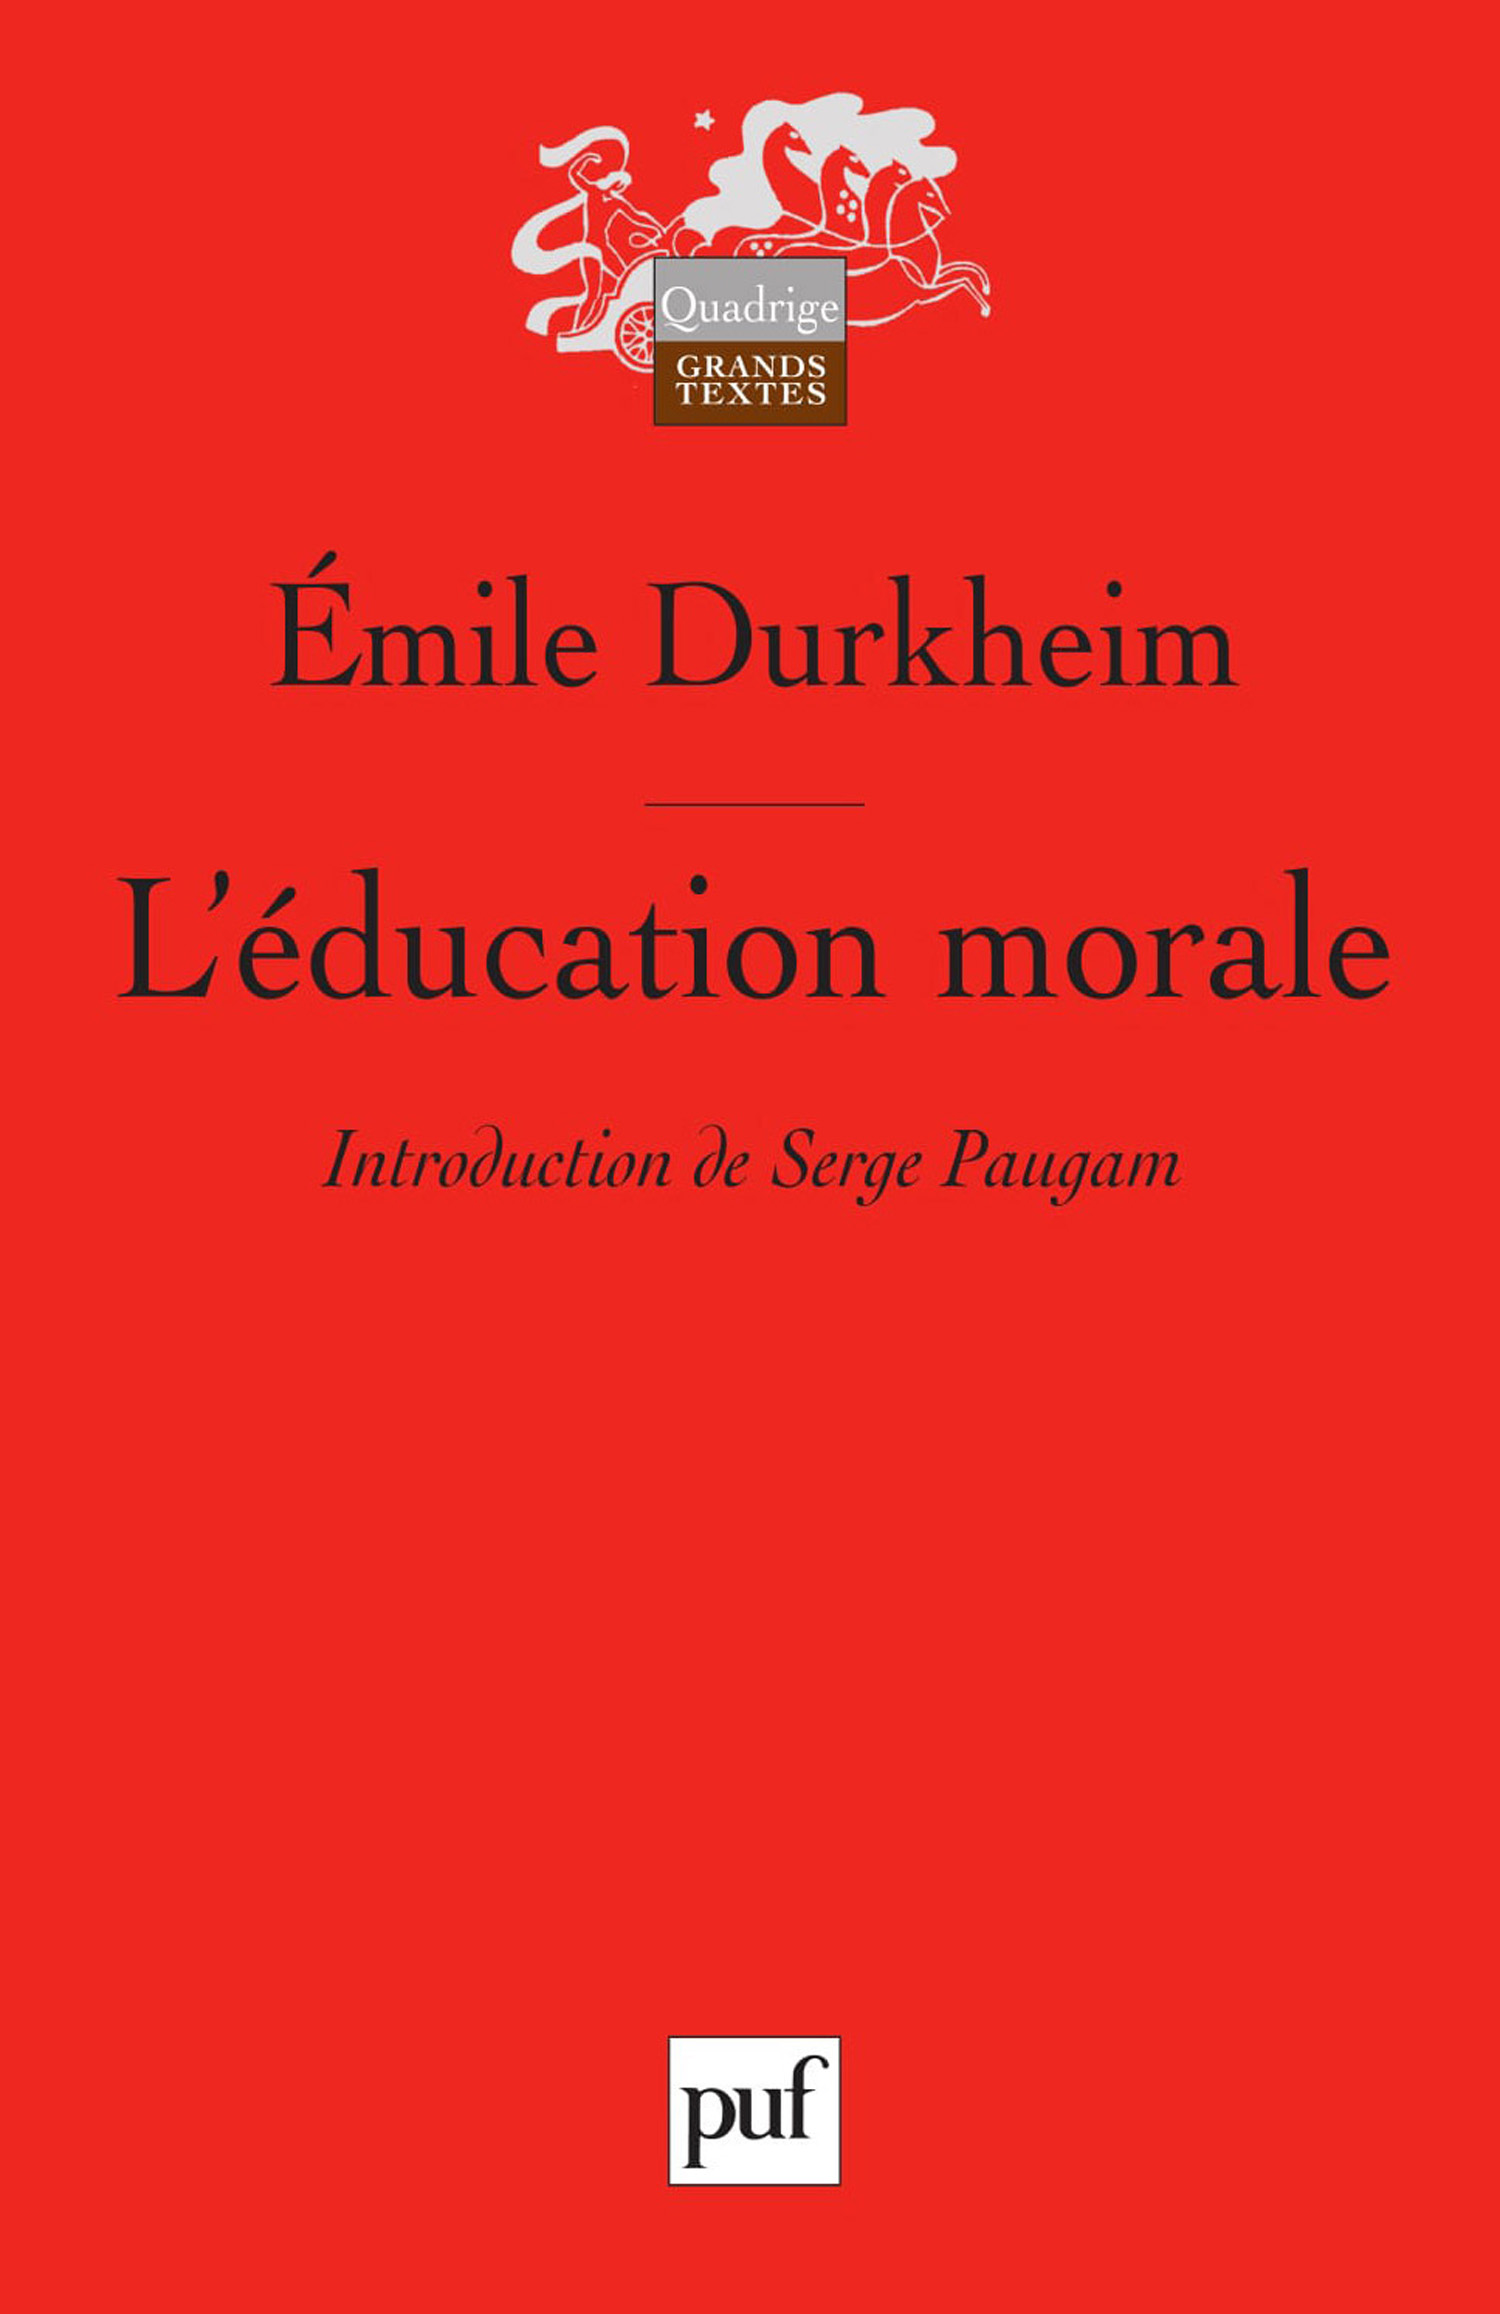 L'éducation morale De Émile Durkheim - Presses Universitaires de France